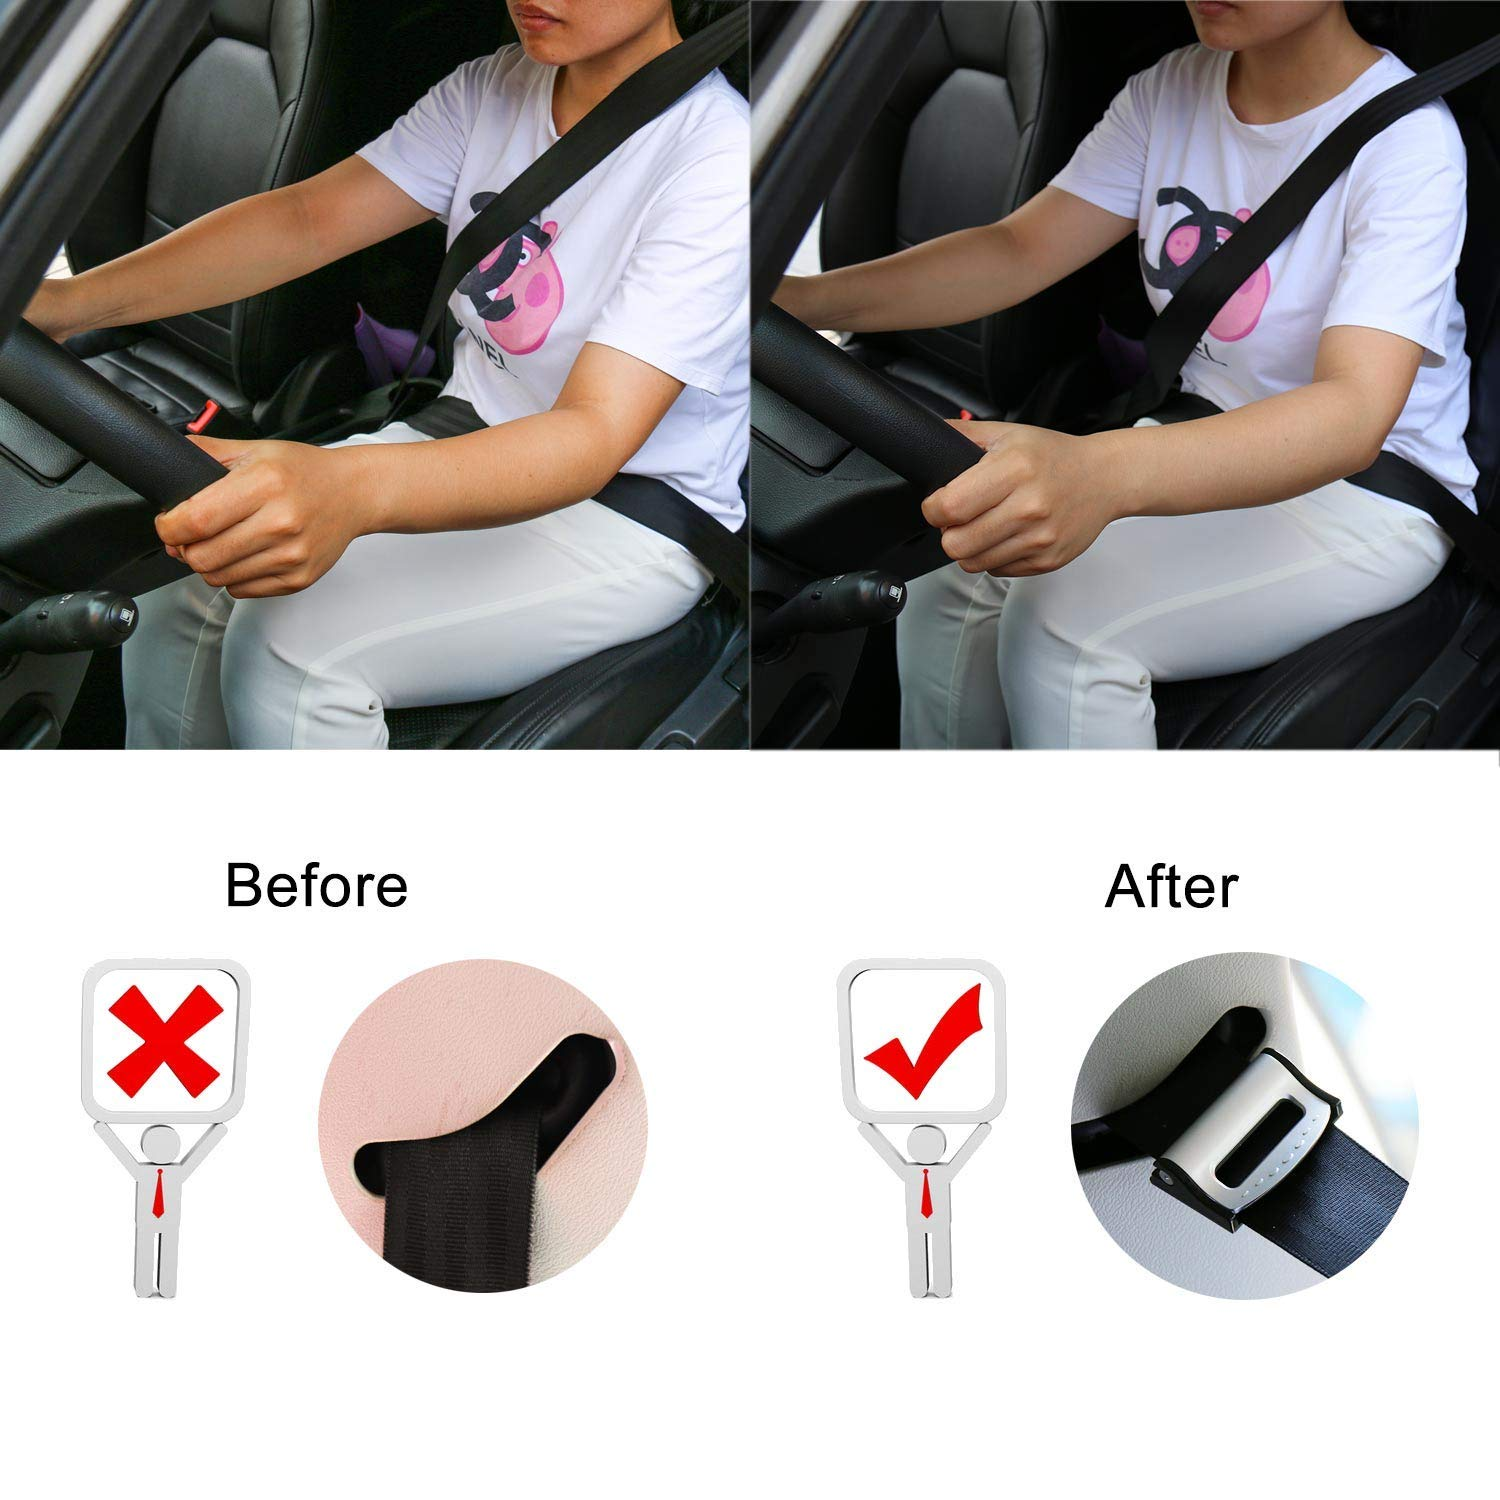 JUSHACHENGTA Car Seat Belt Clip,Seatbelt Adjuster,4pcs Universal Auto Vehicle Seat Belt Adjuster Clip for Kids and Adults-Silver